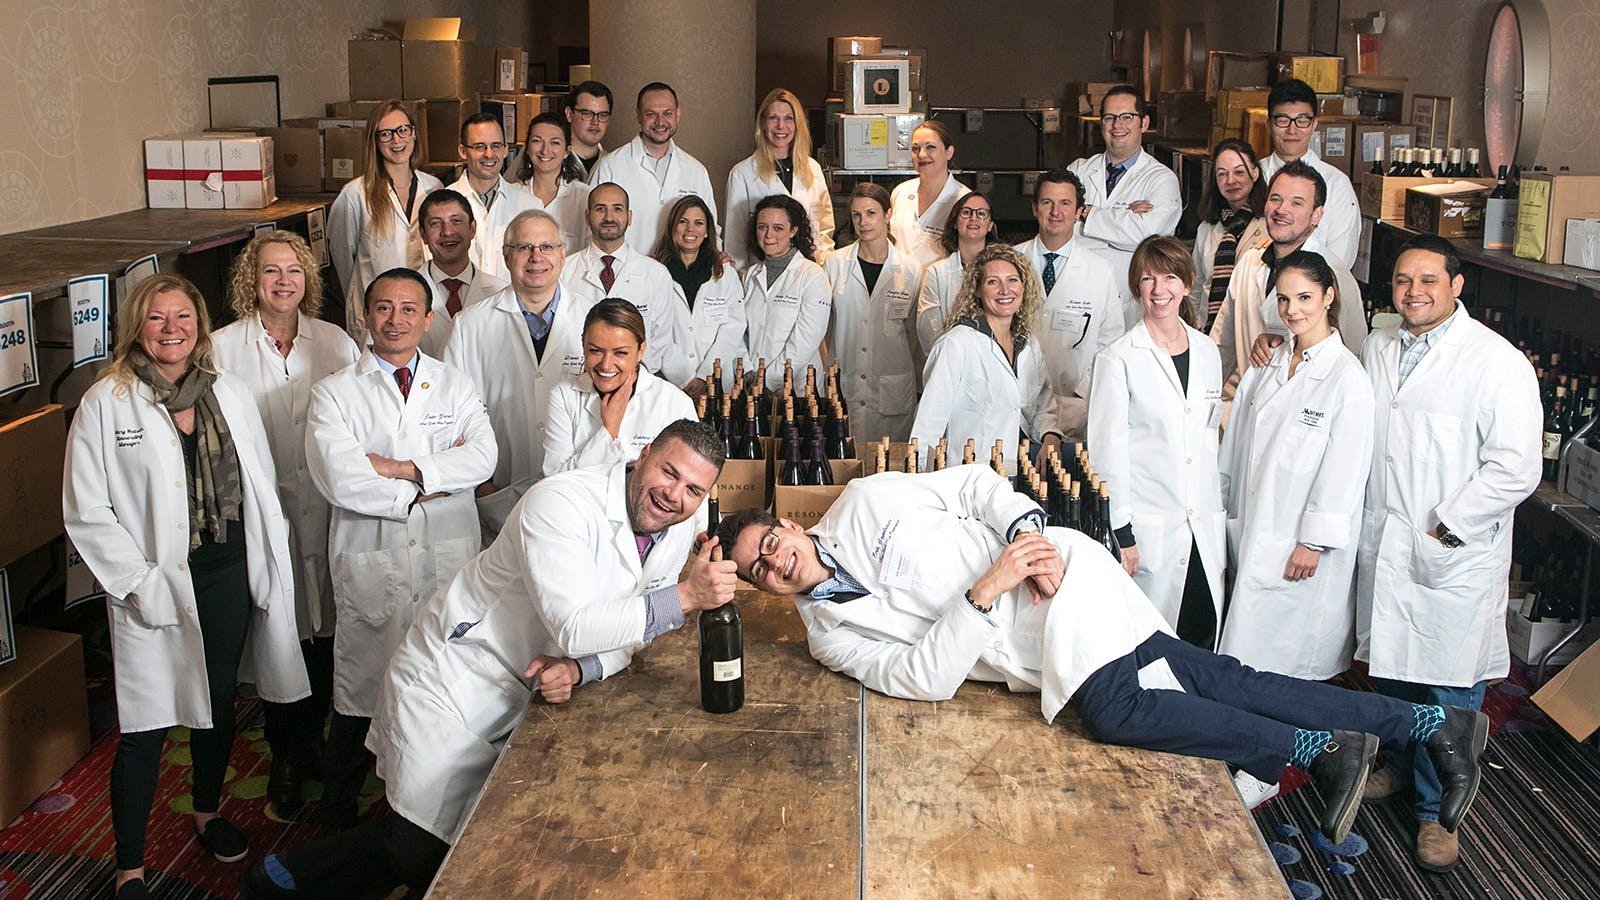 The Wine Experience Sommelier Team